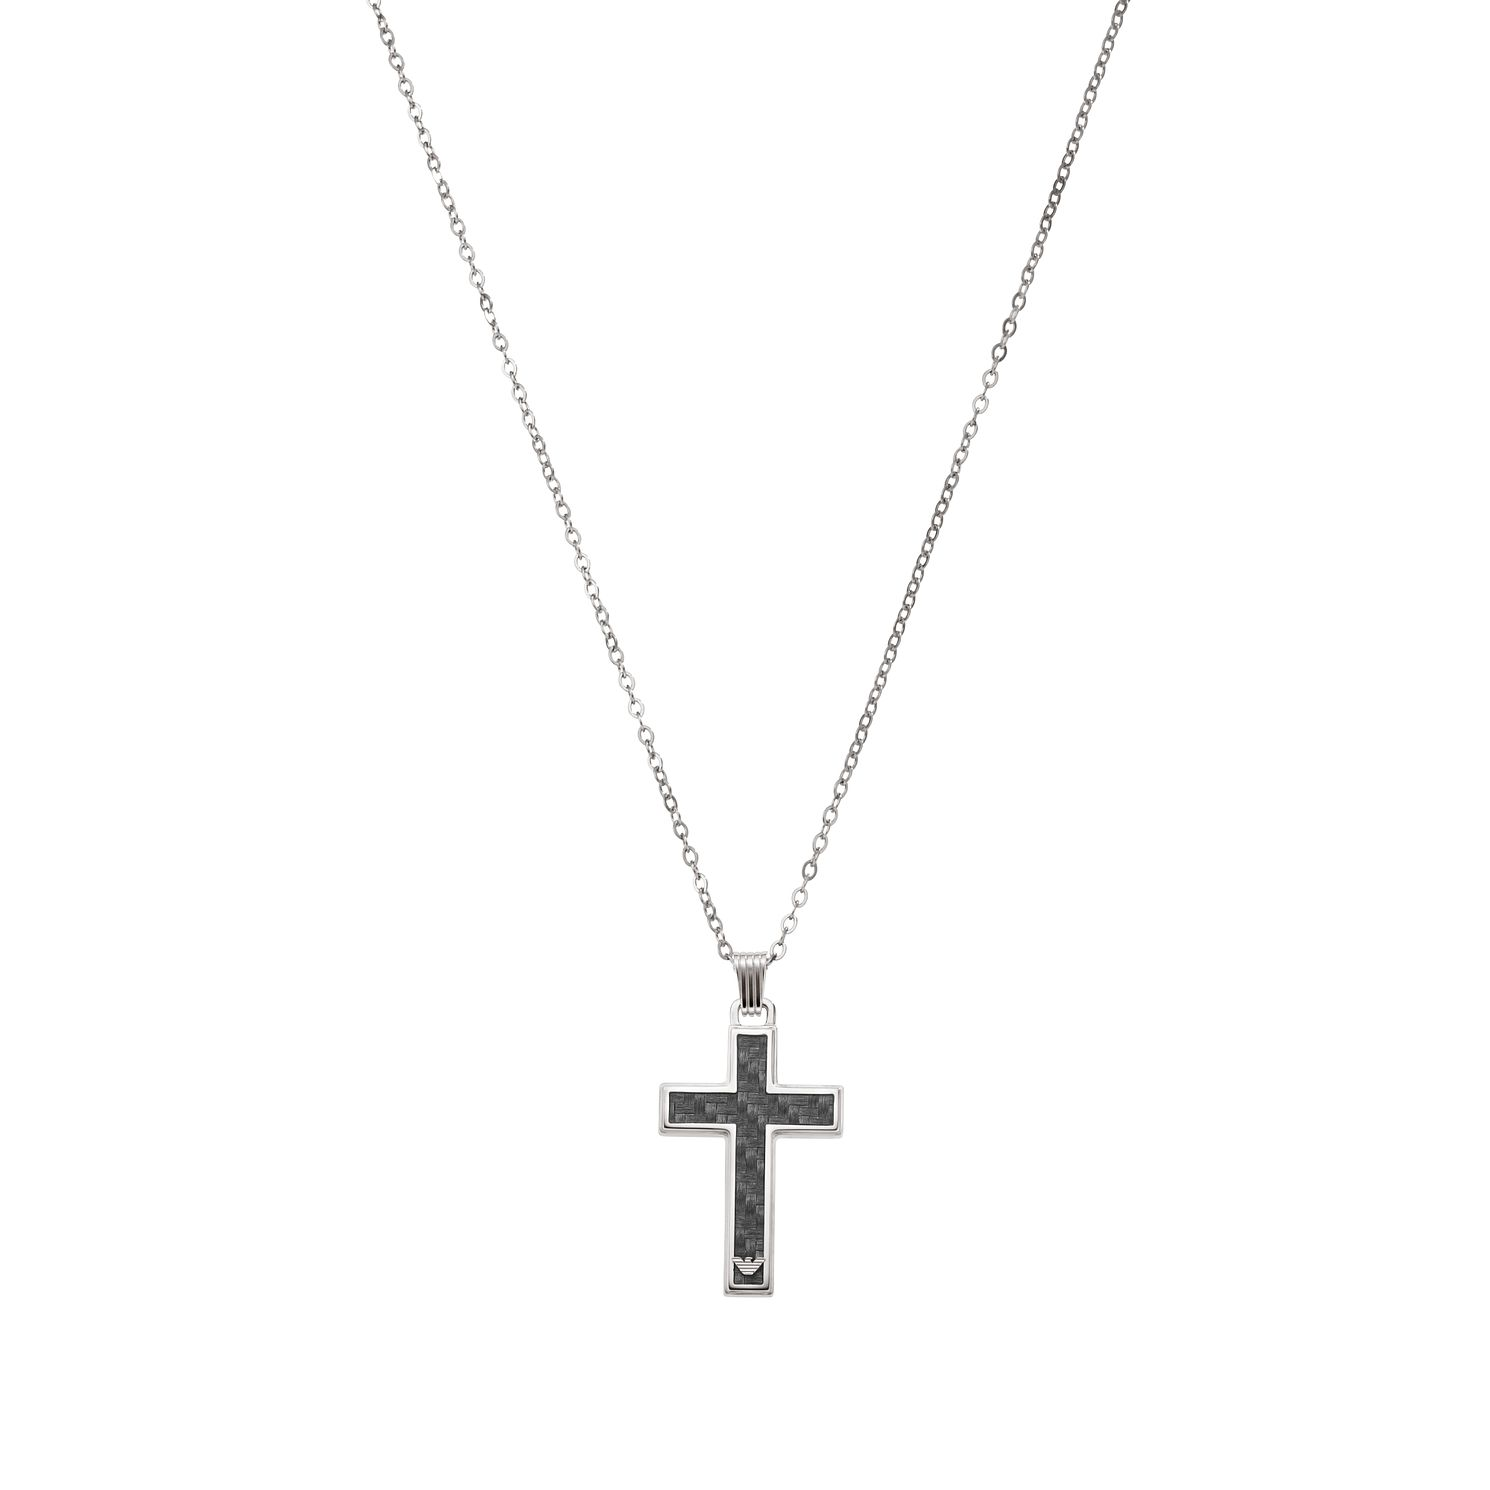 Emporio Armani Men's Steel & Carbon Fibre Cross Necklace - Product number 1388150